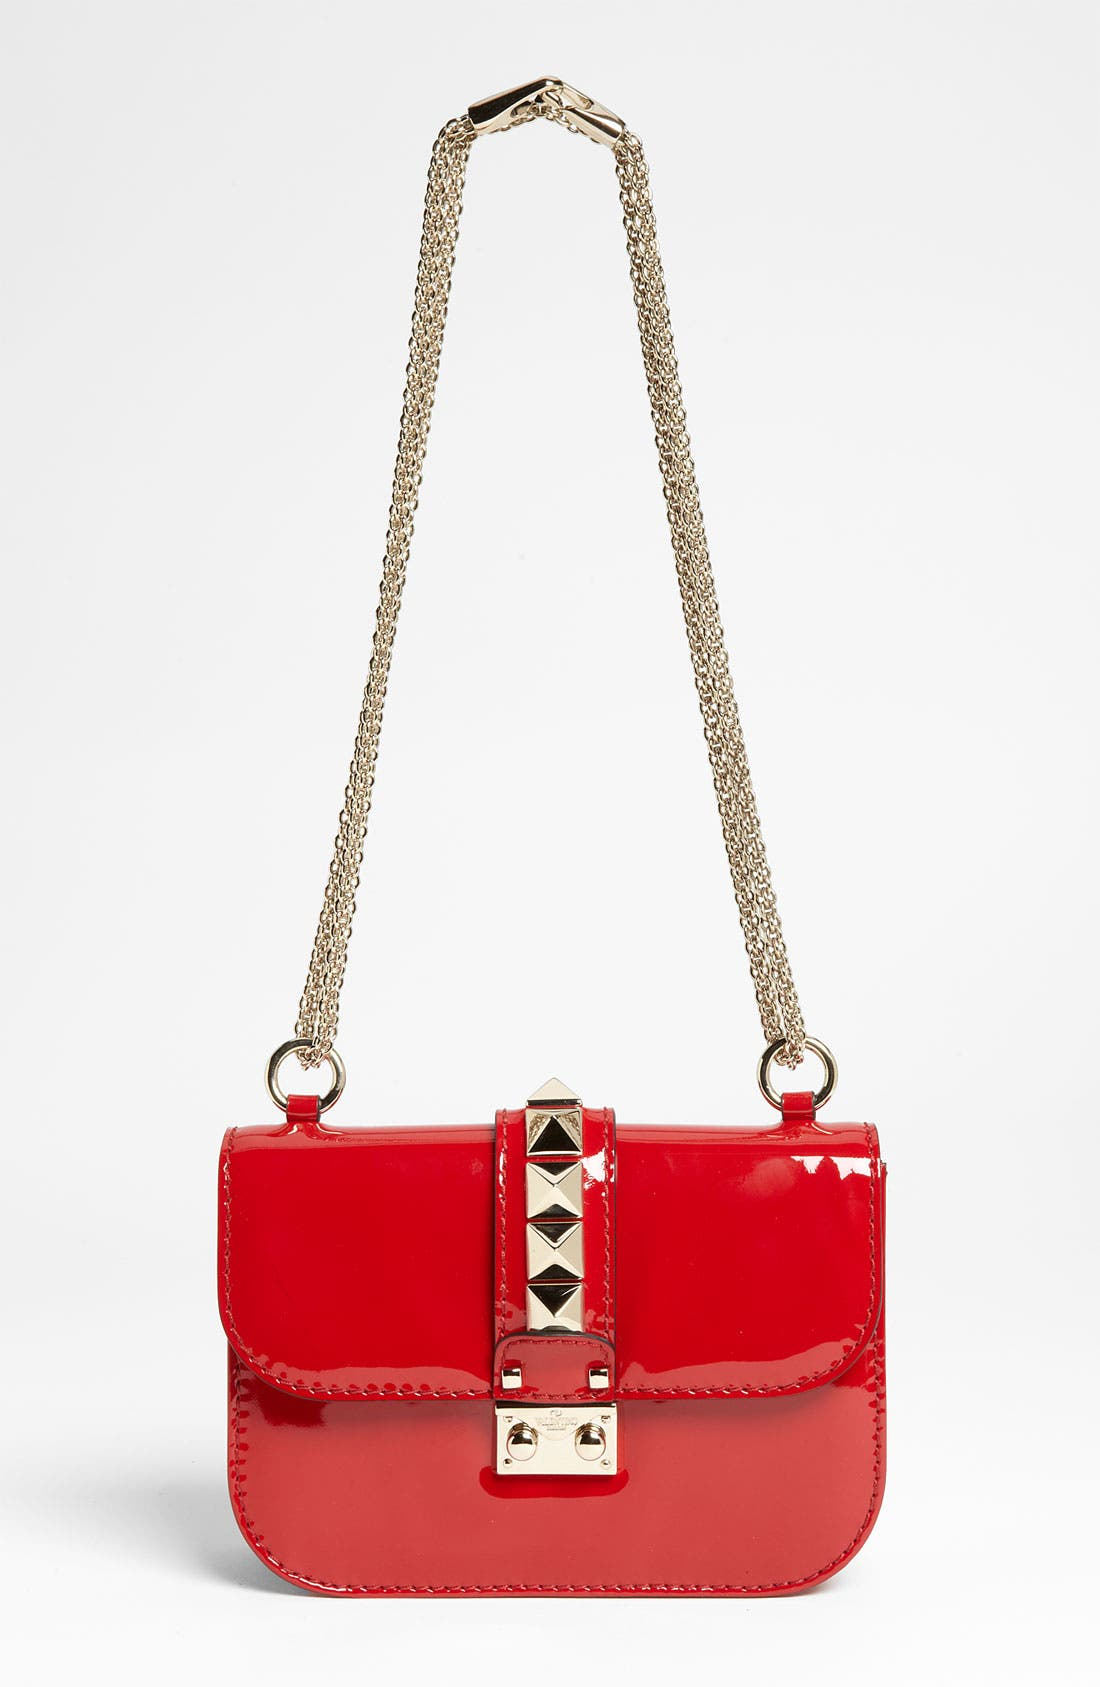 Alternate Image 1 Selected - Valentino 'Rockstud - Small Lock' Leather Shoulder Bag